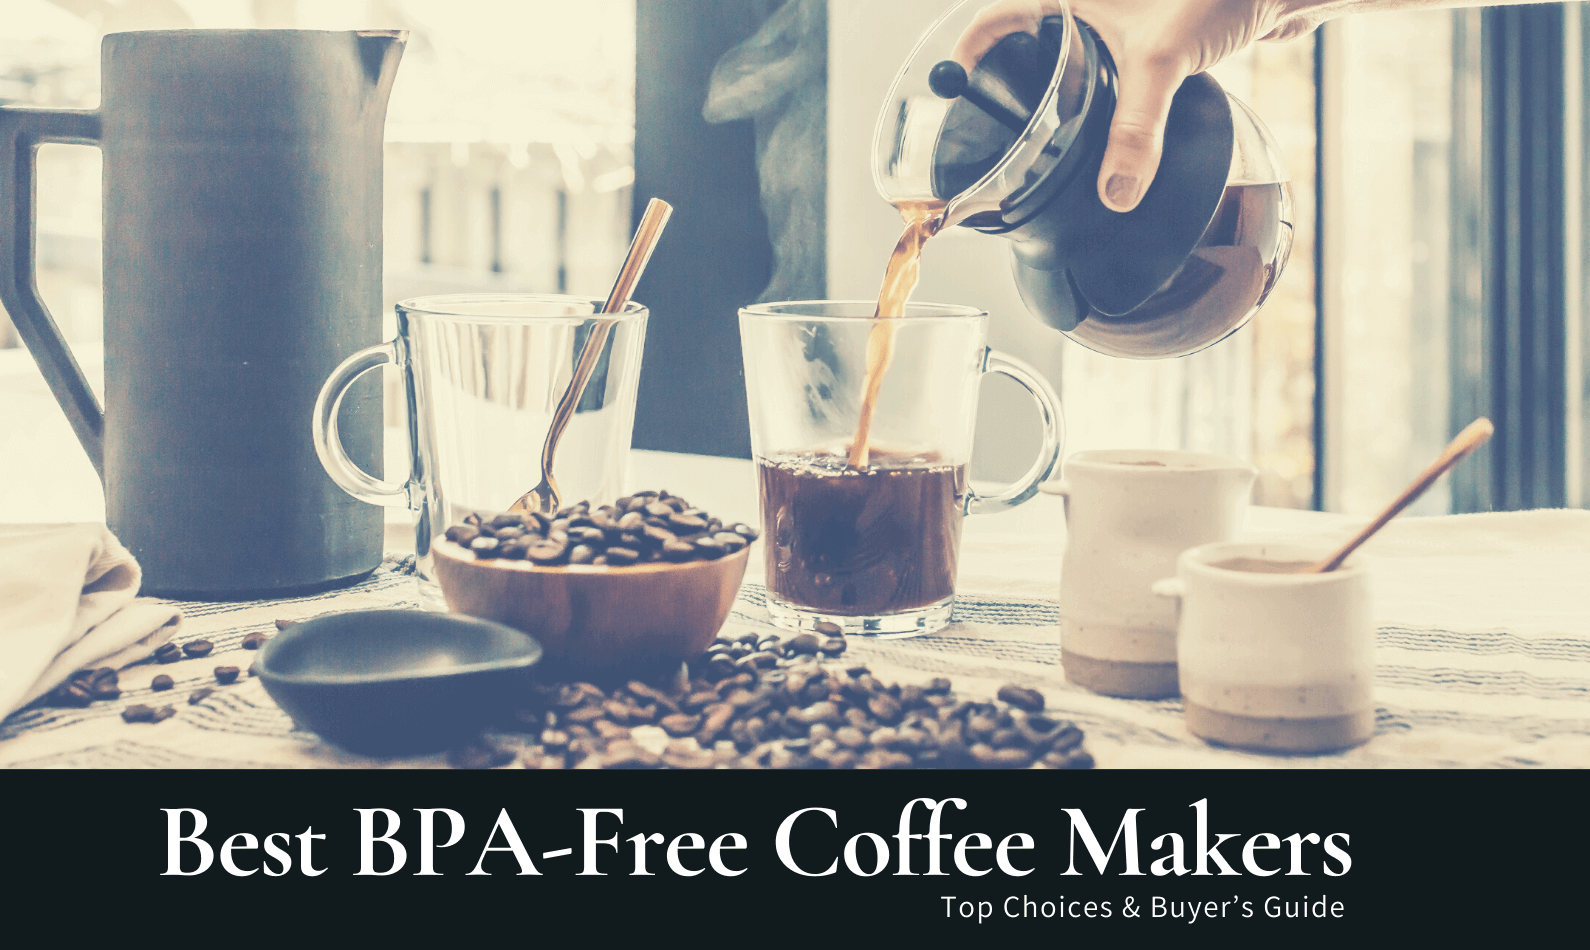 Best BPA-Free Coffee Makers